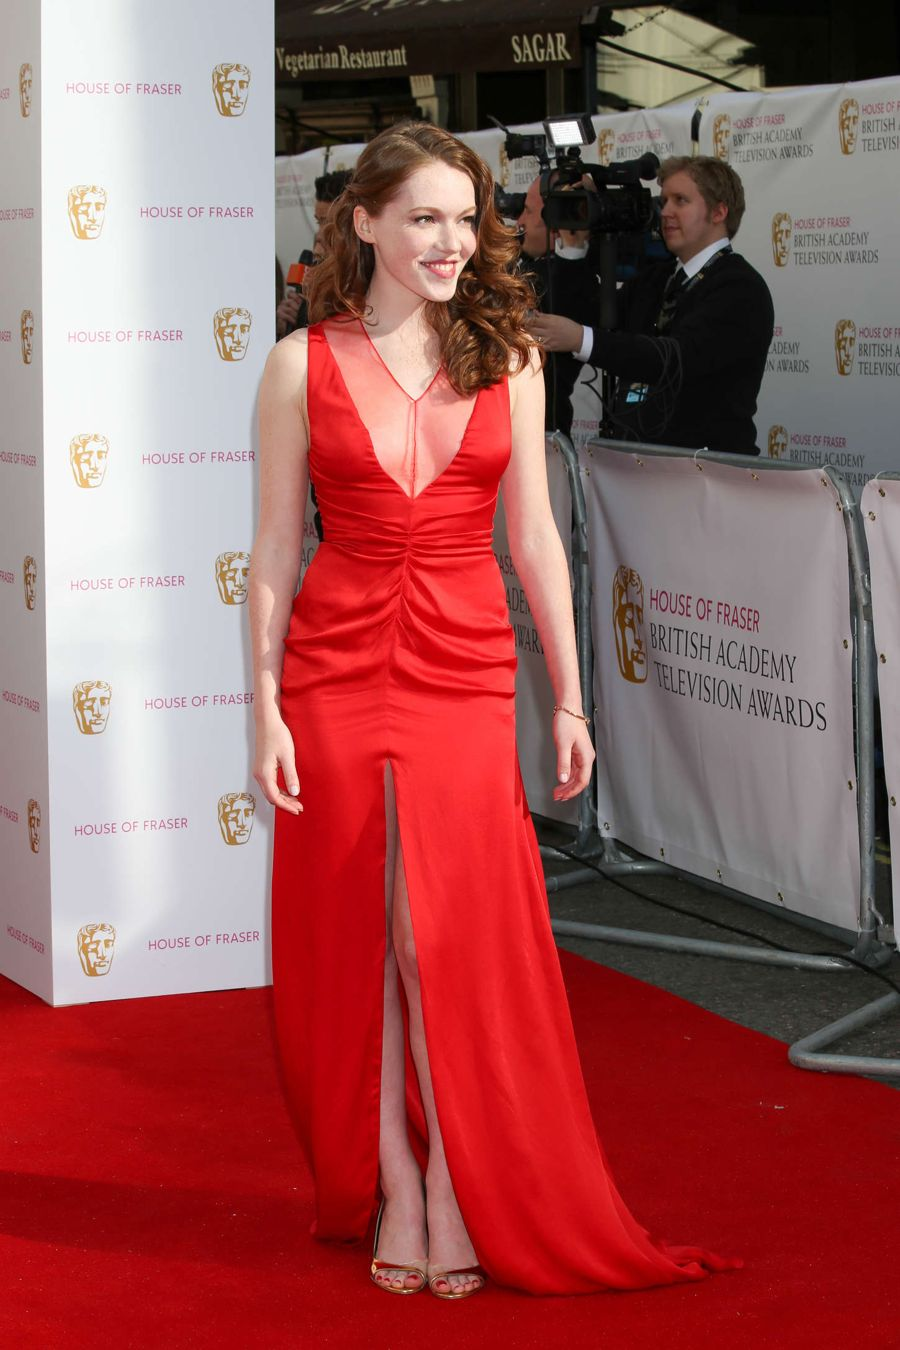 Charlotte Spencer - BAFTA Awards 2015 in London